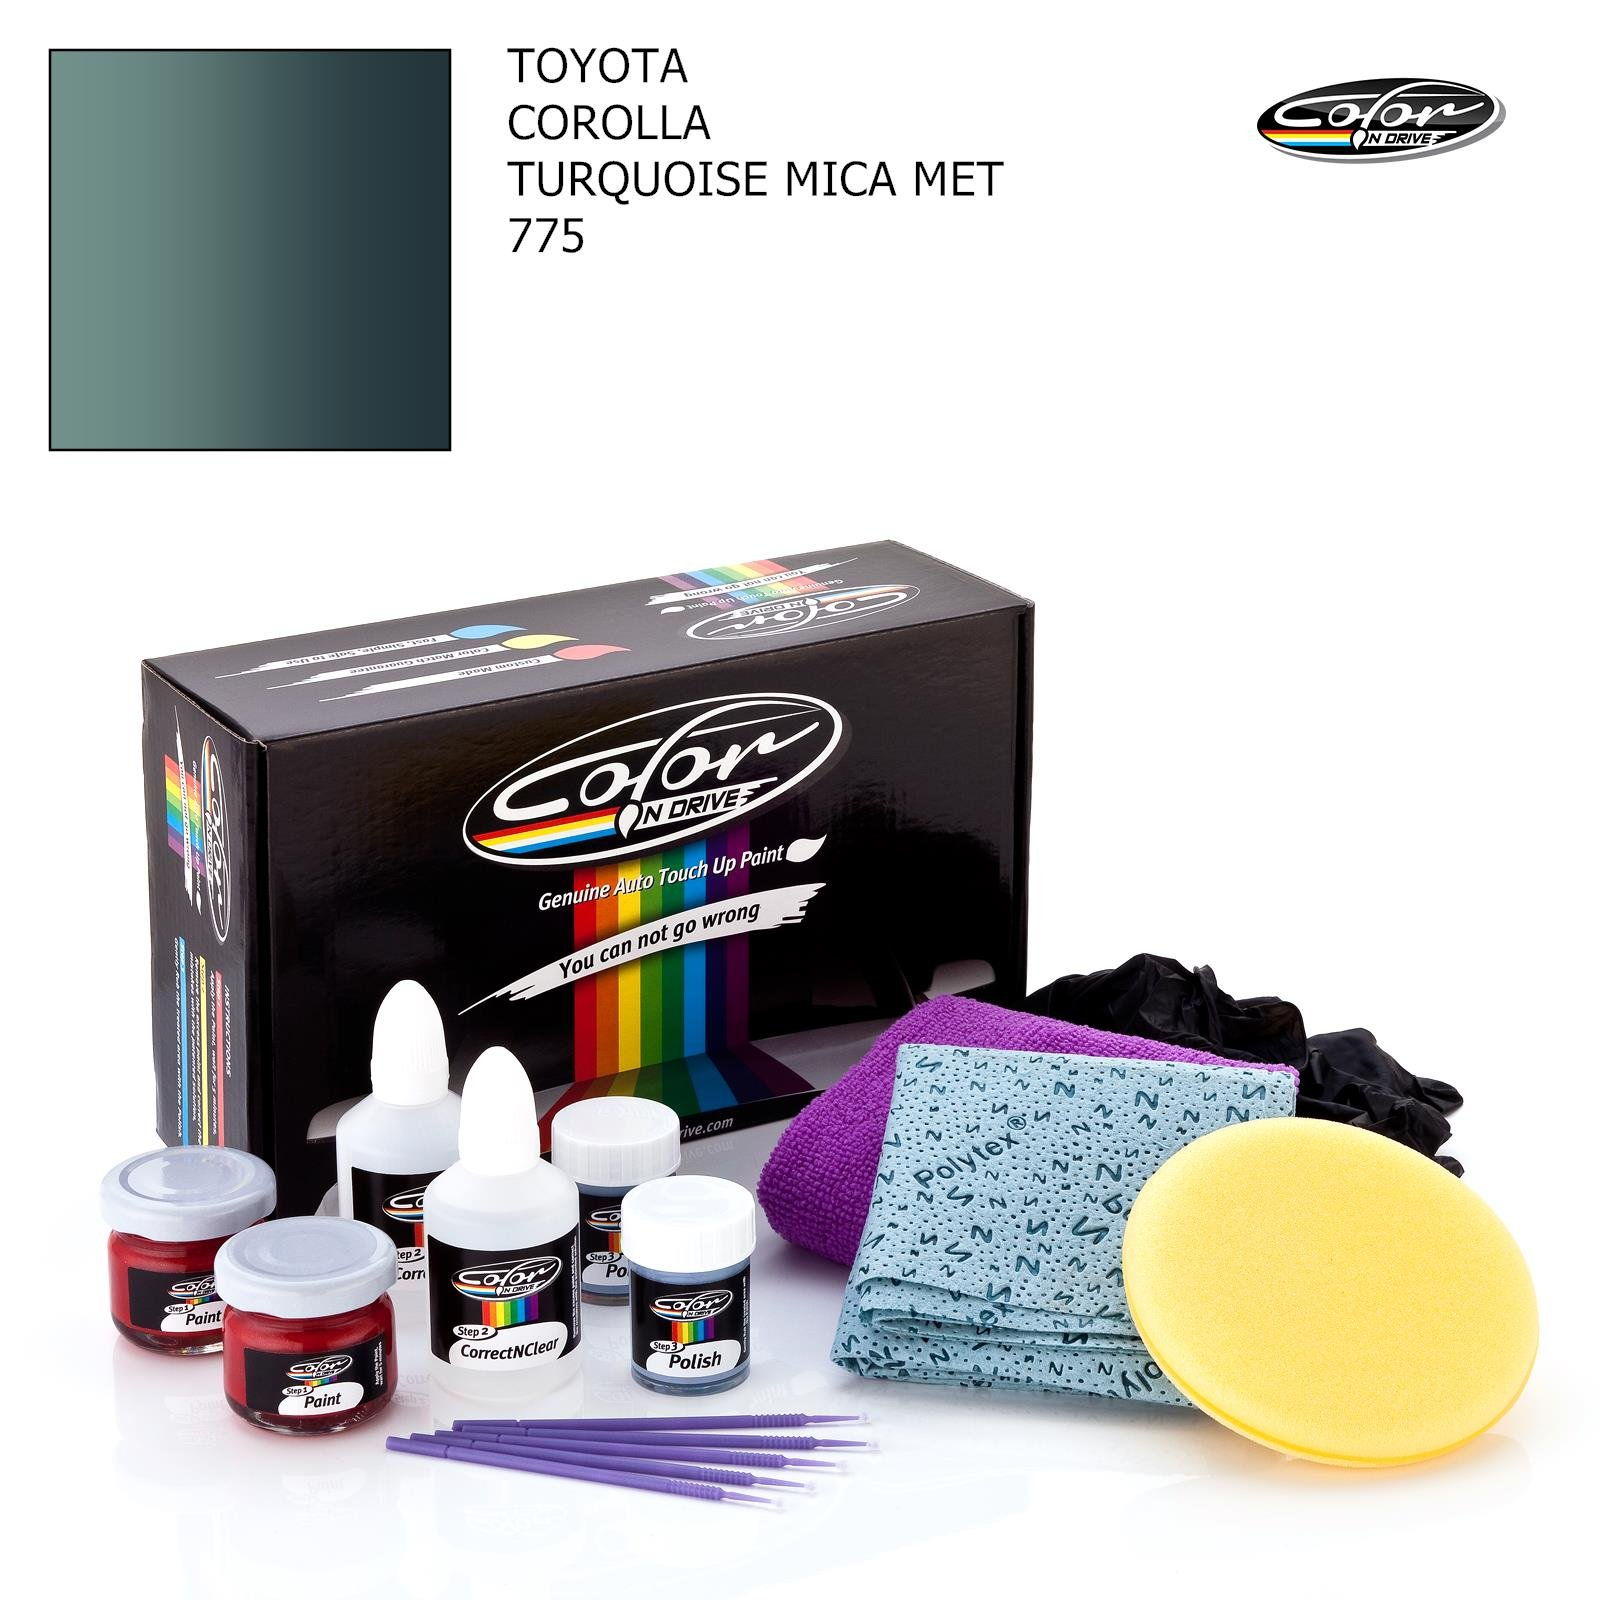 TOYOTA COROLLA / TURQUOISE MICA MET - 775 / COLOR N DRIVE TOUCH UP PAINT SYSTEM FOR PAINT CHIPS AND SCRATCHES / PLUS PACK